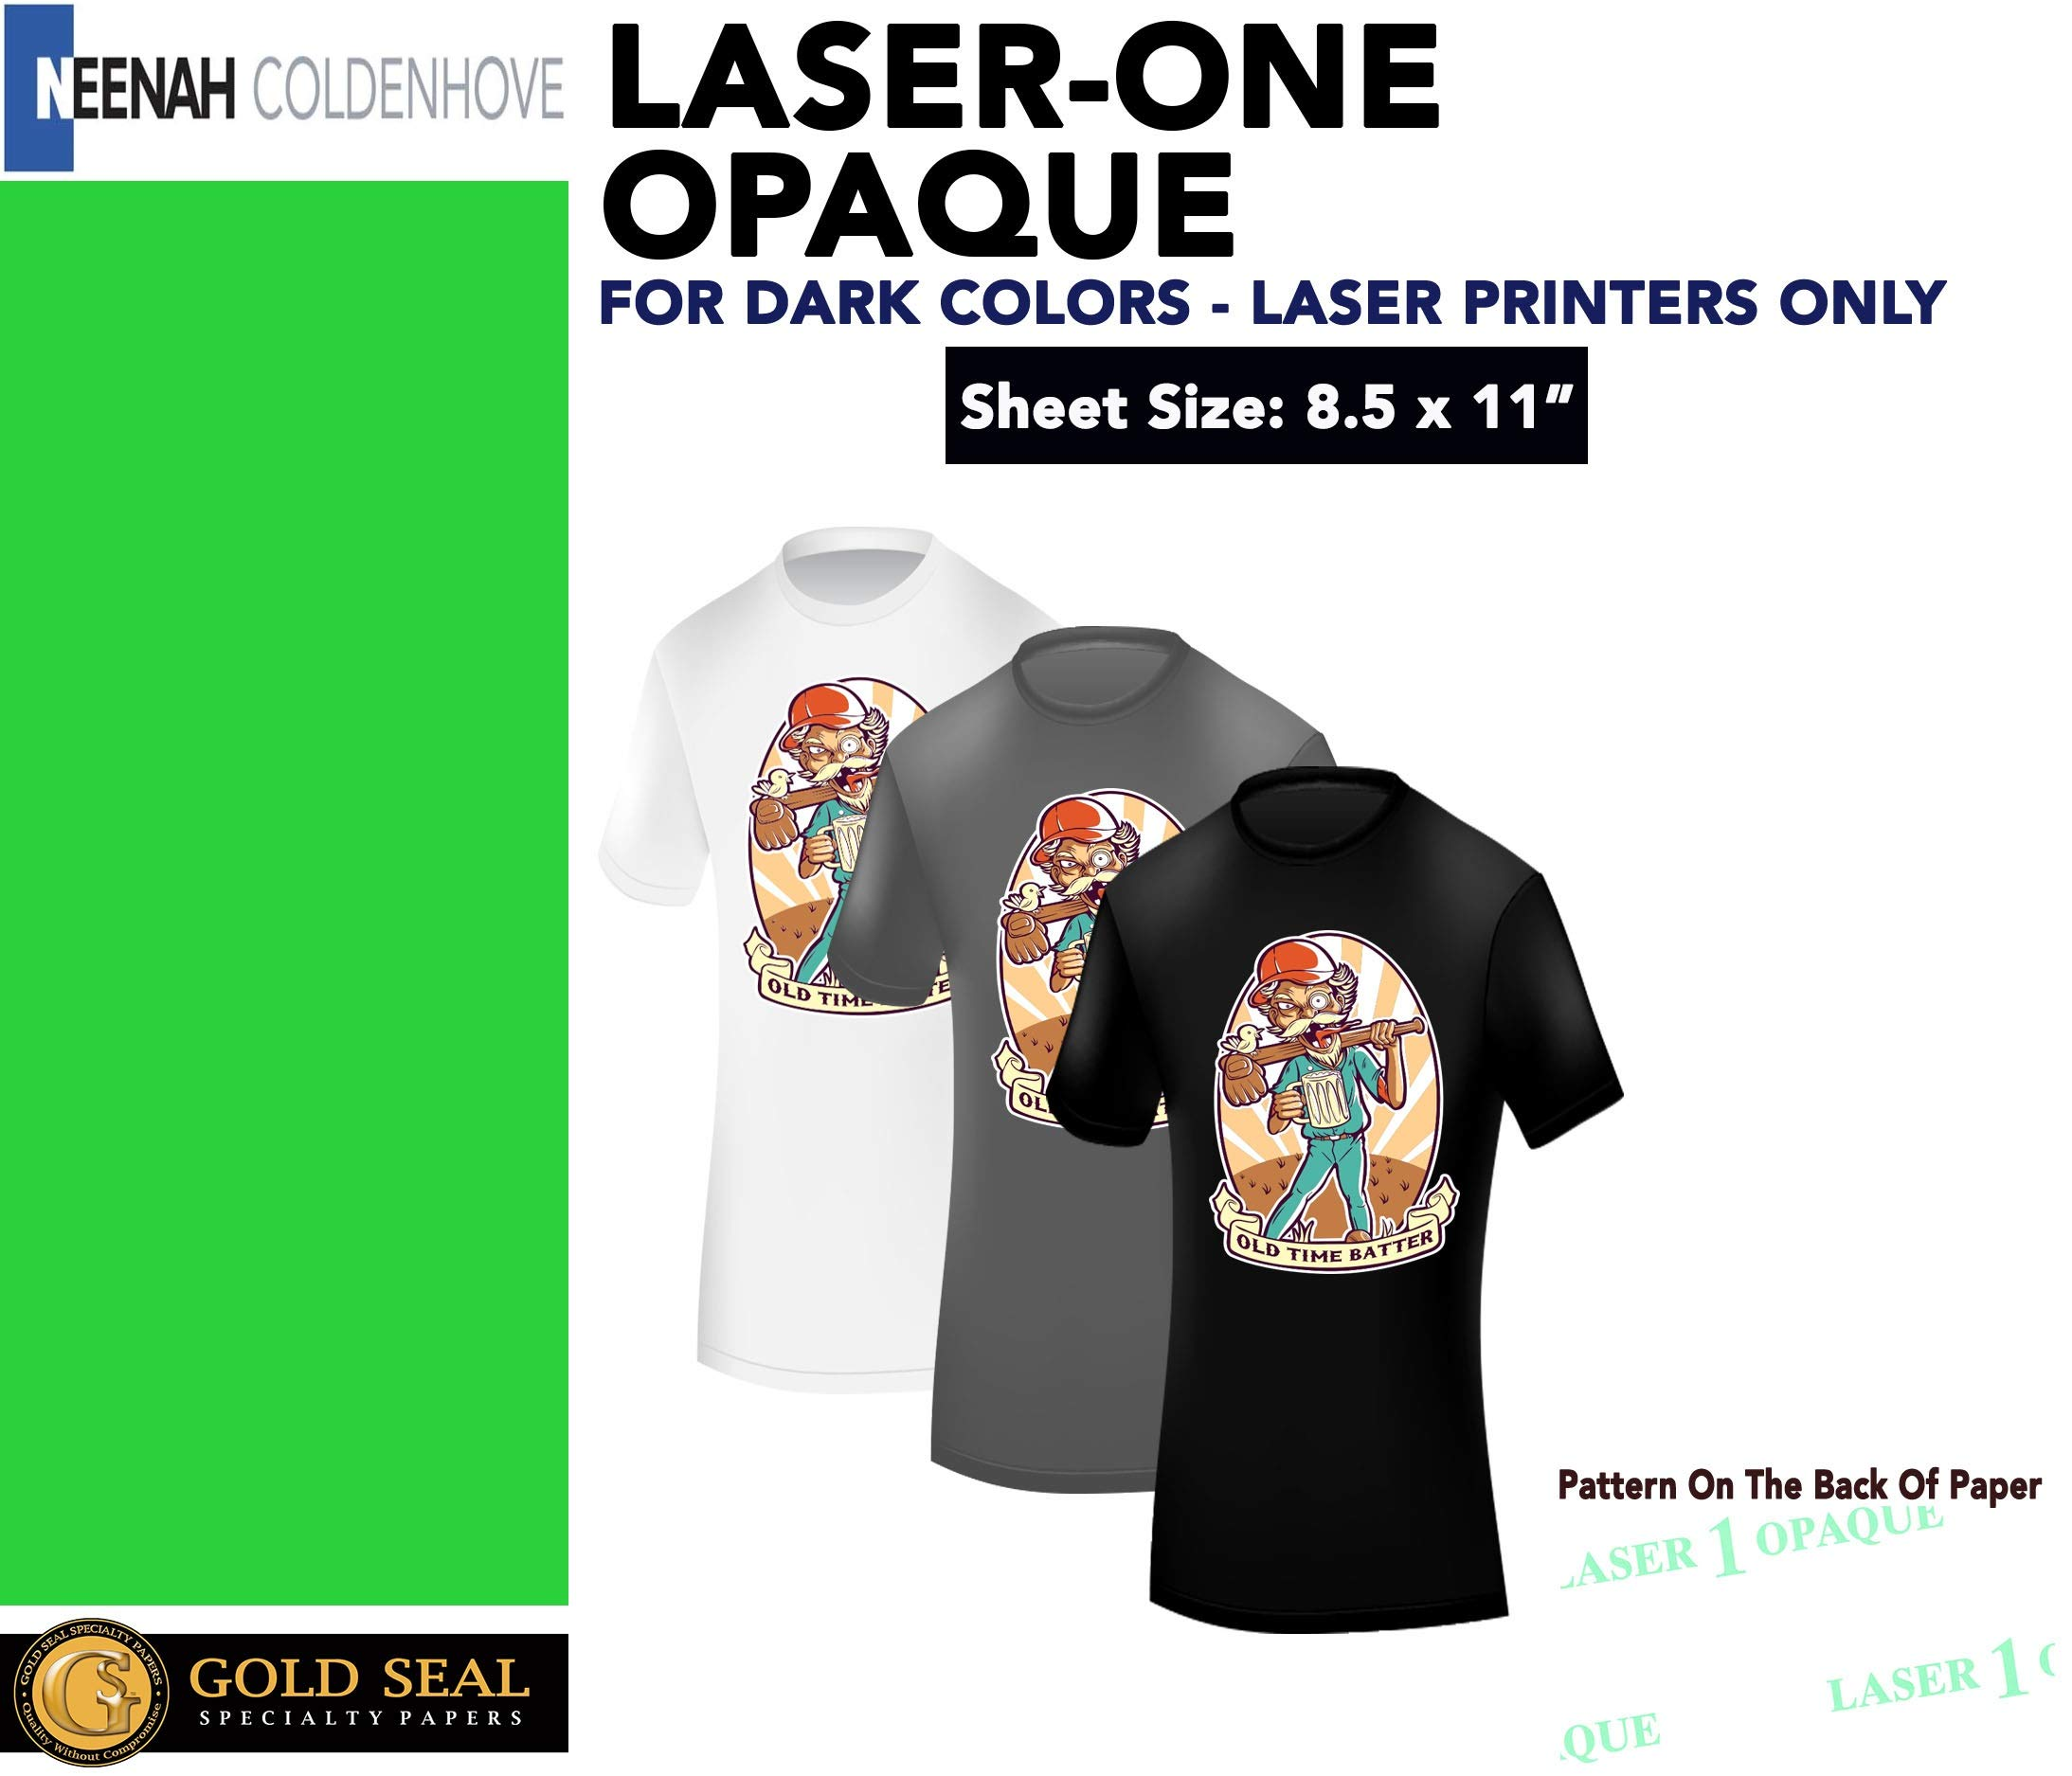 Laser 1 Opaque 1 Step/Darks Heat Transfer Paper For Laser Printers 8.5x11 (100 Sheets) by Neenah